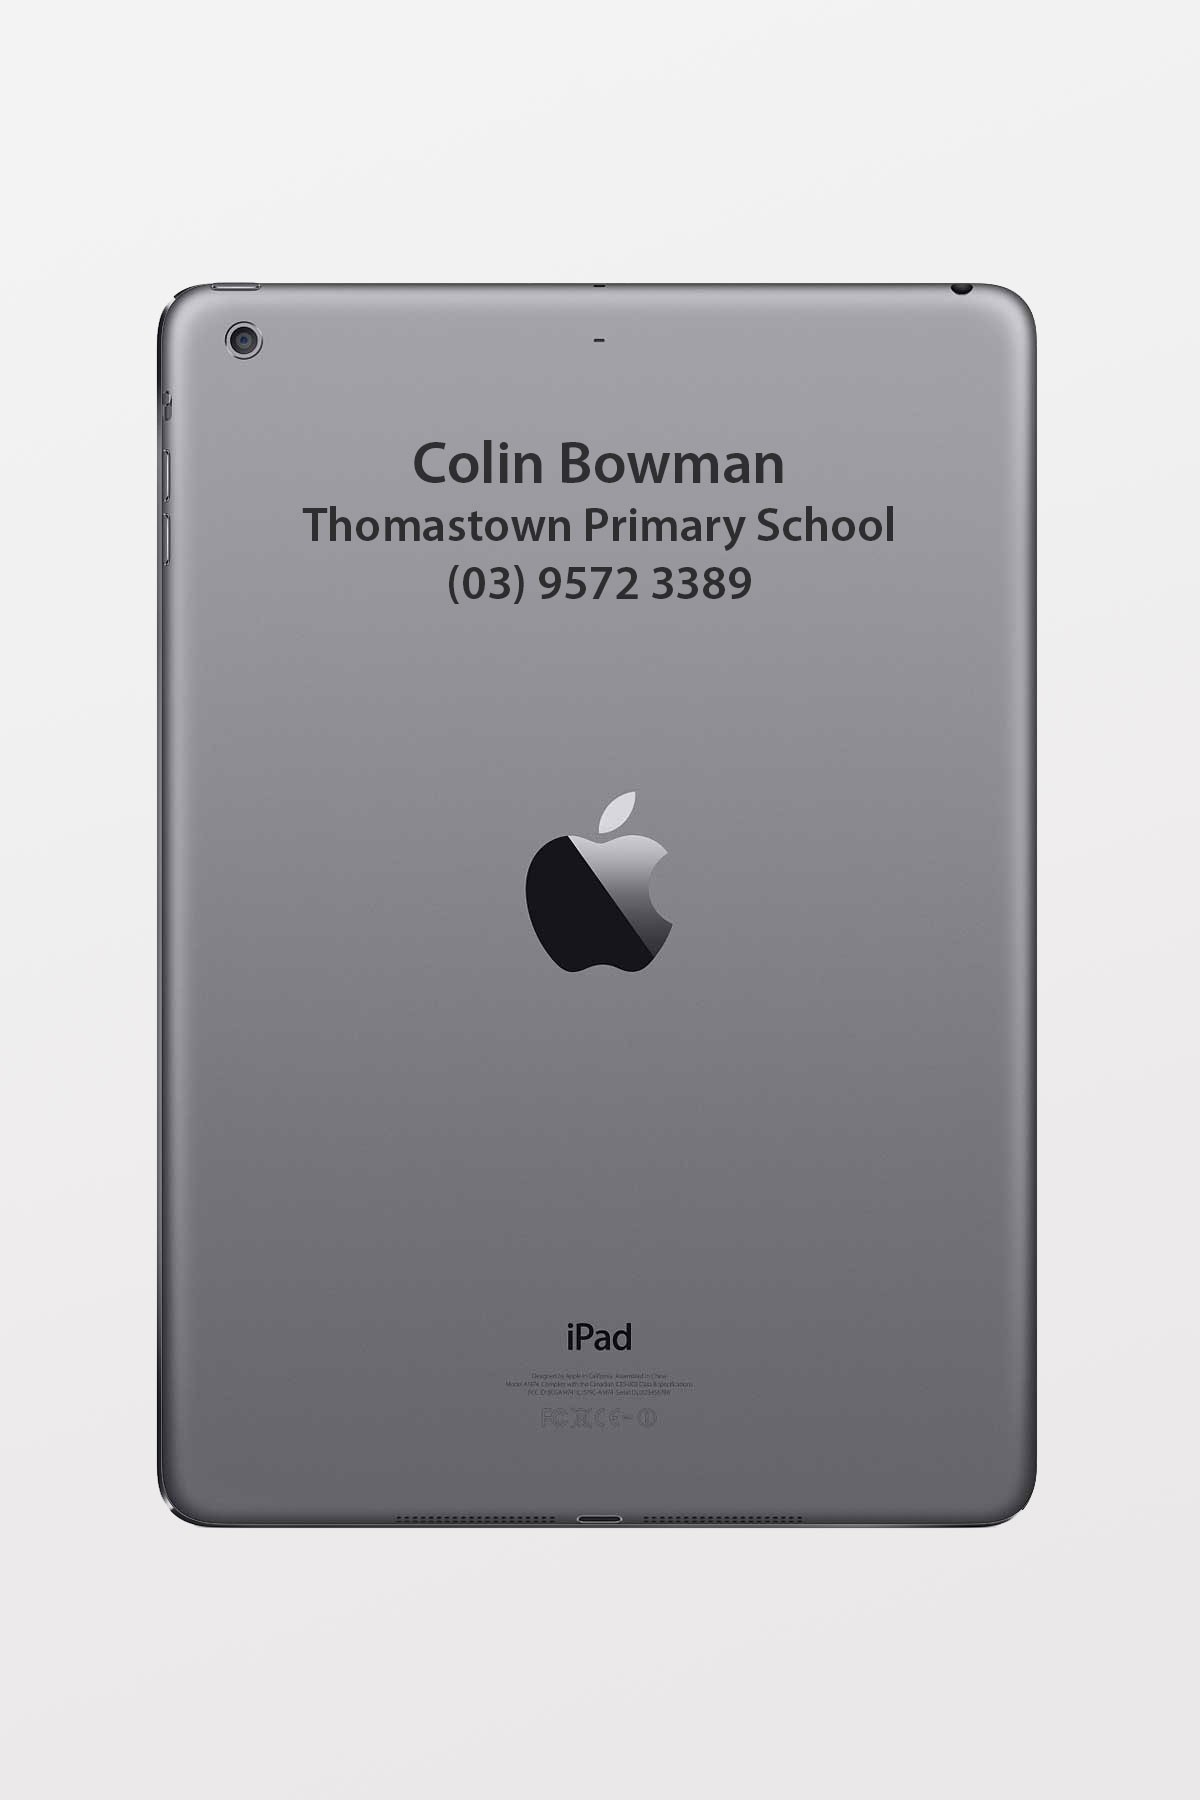 Laser Engraving service for iPad: (insert text/font thickness here)